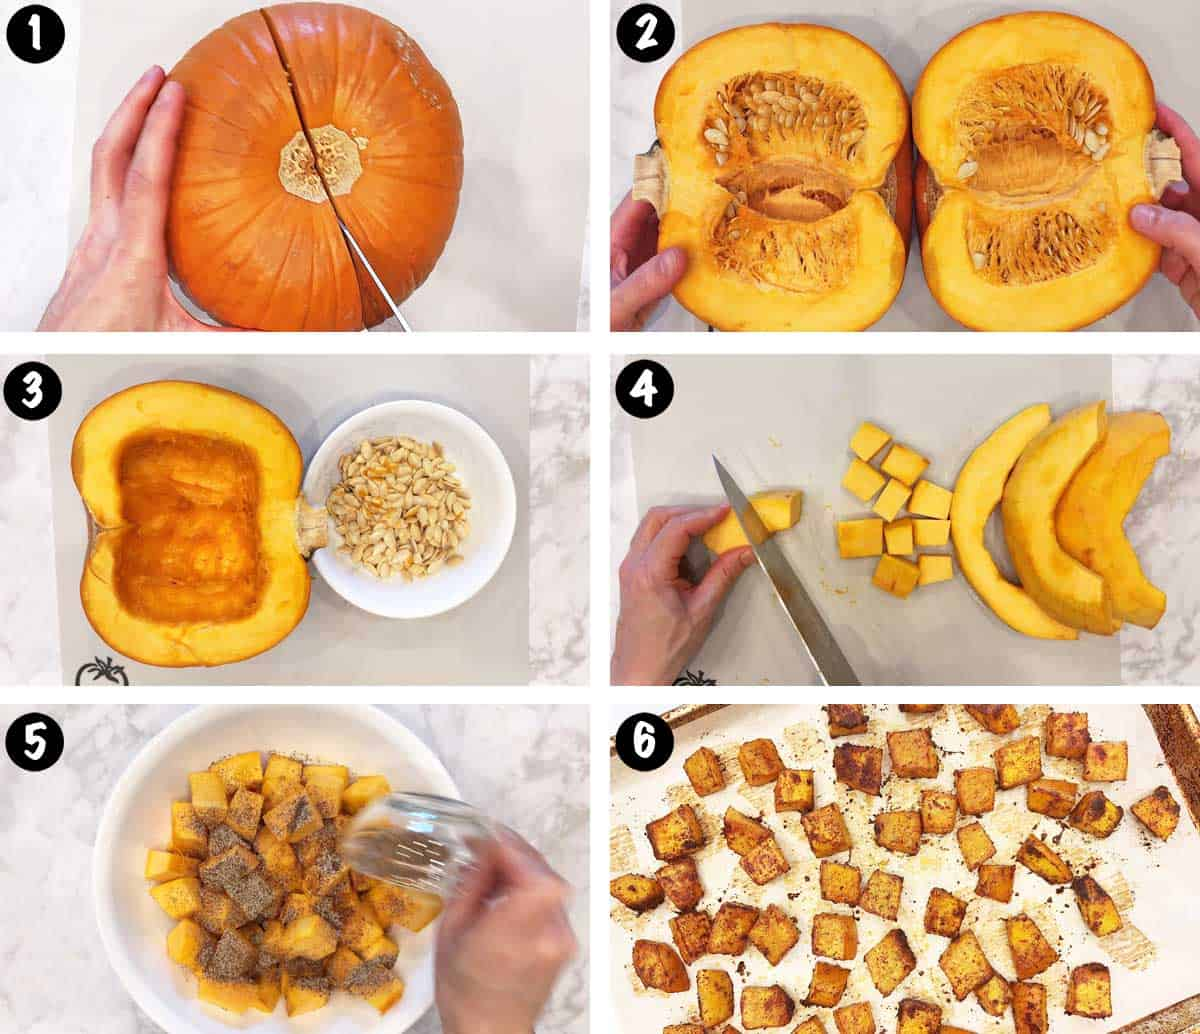 A photo collage showing the steps for roasting pumpkin cubes.